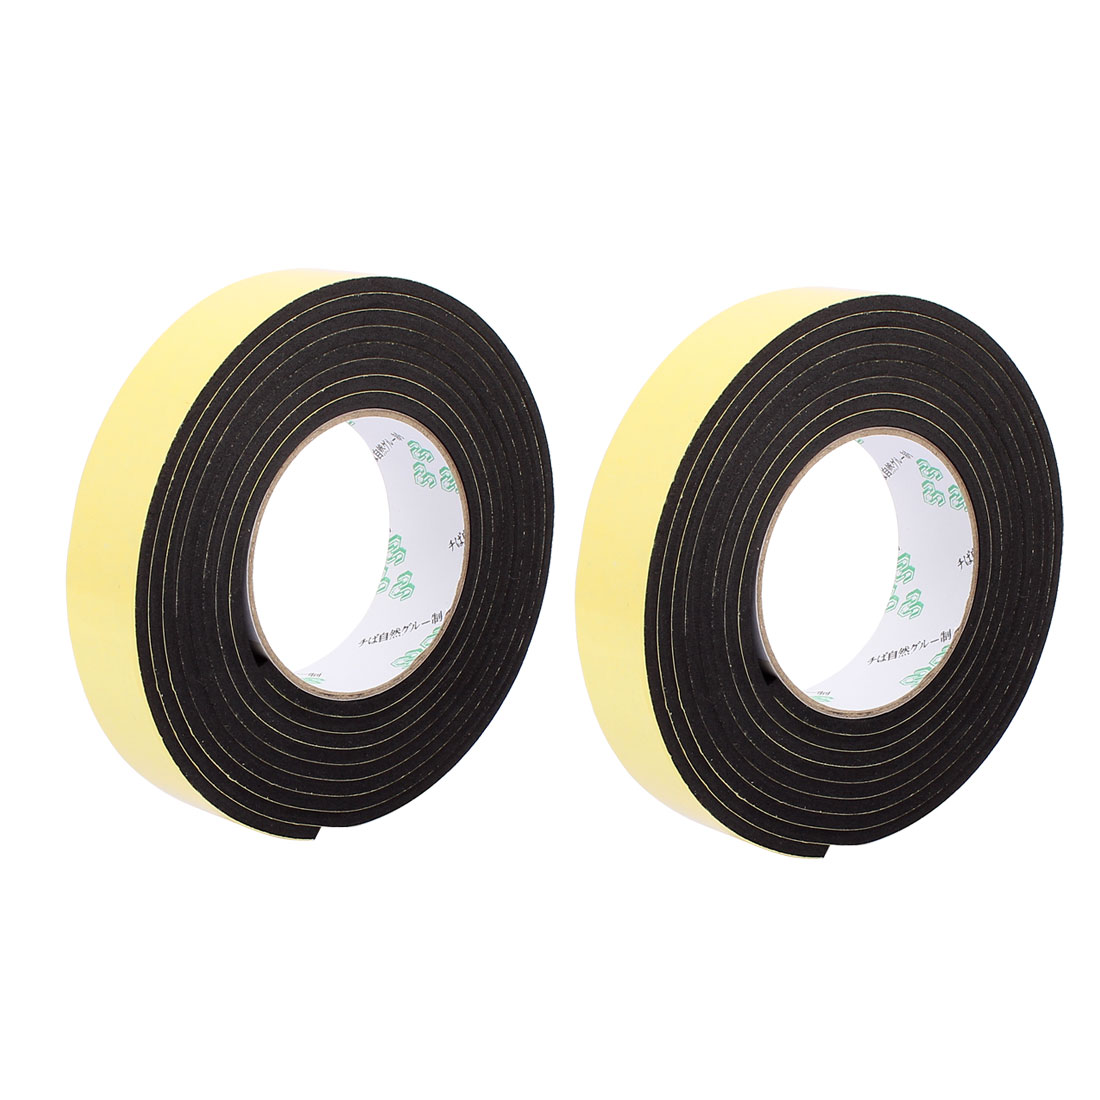 2Pcs 3CM Width 3 Meters Long 4MM Thick Single Sided Sealing Shockproof Sponge Tape